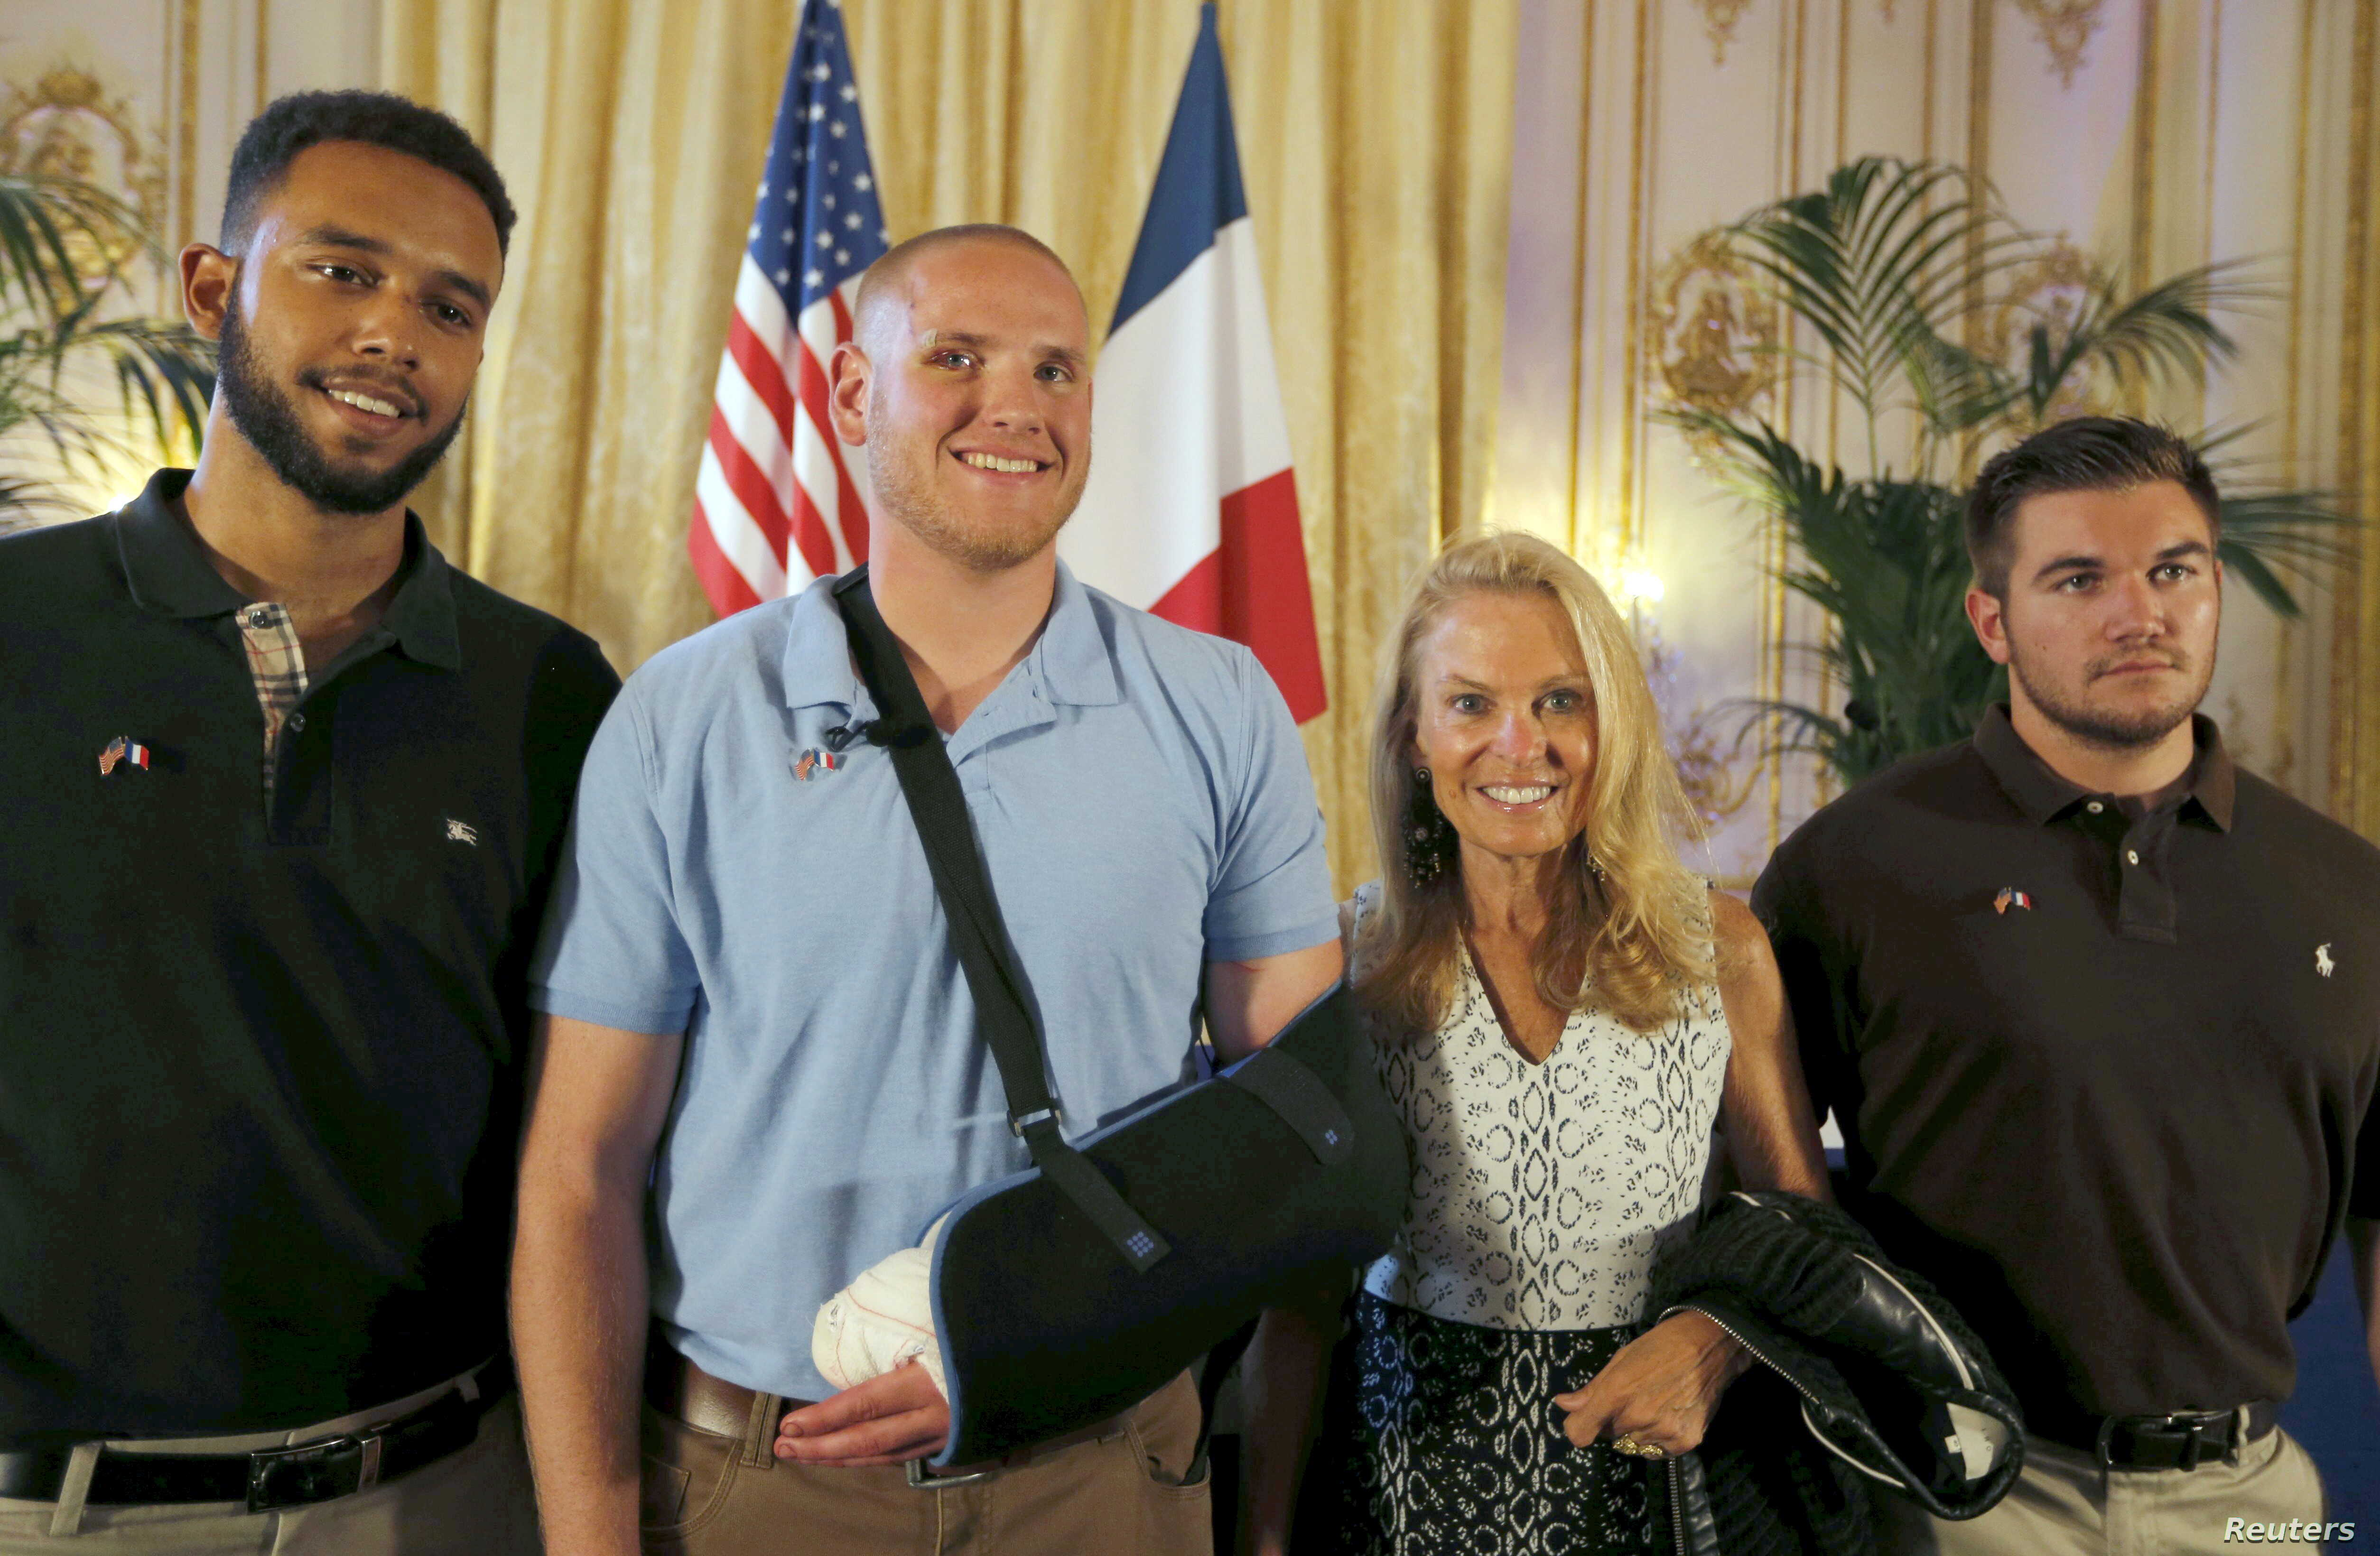 U.S. ambassador to France Jane Hartley (2nd R) presents student Anthony Sadler (L), U.S Airman First Class Spencer Stone (2nd L) and National Guardsman Alek Skarlatos (R) as they attend a ceremony at the U.S. Embassy in Paris, France, Aug. 23, 2015.